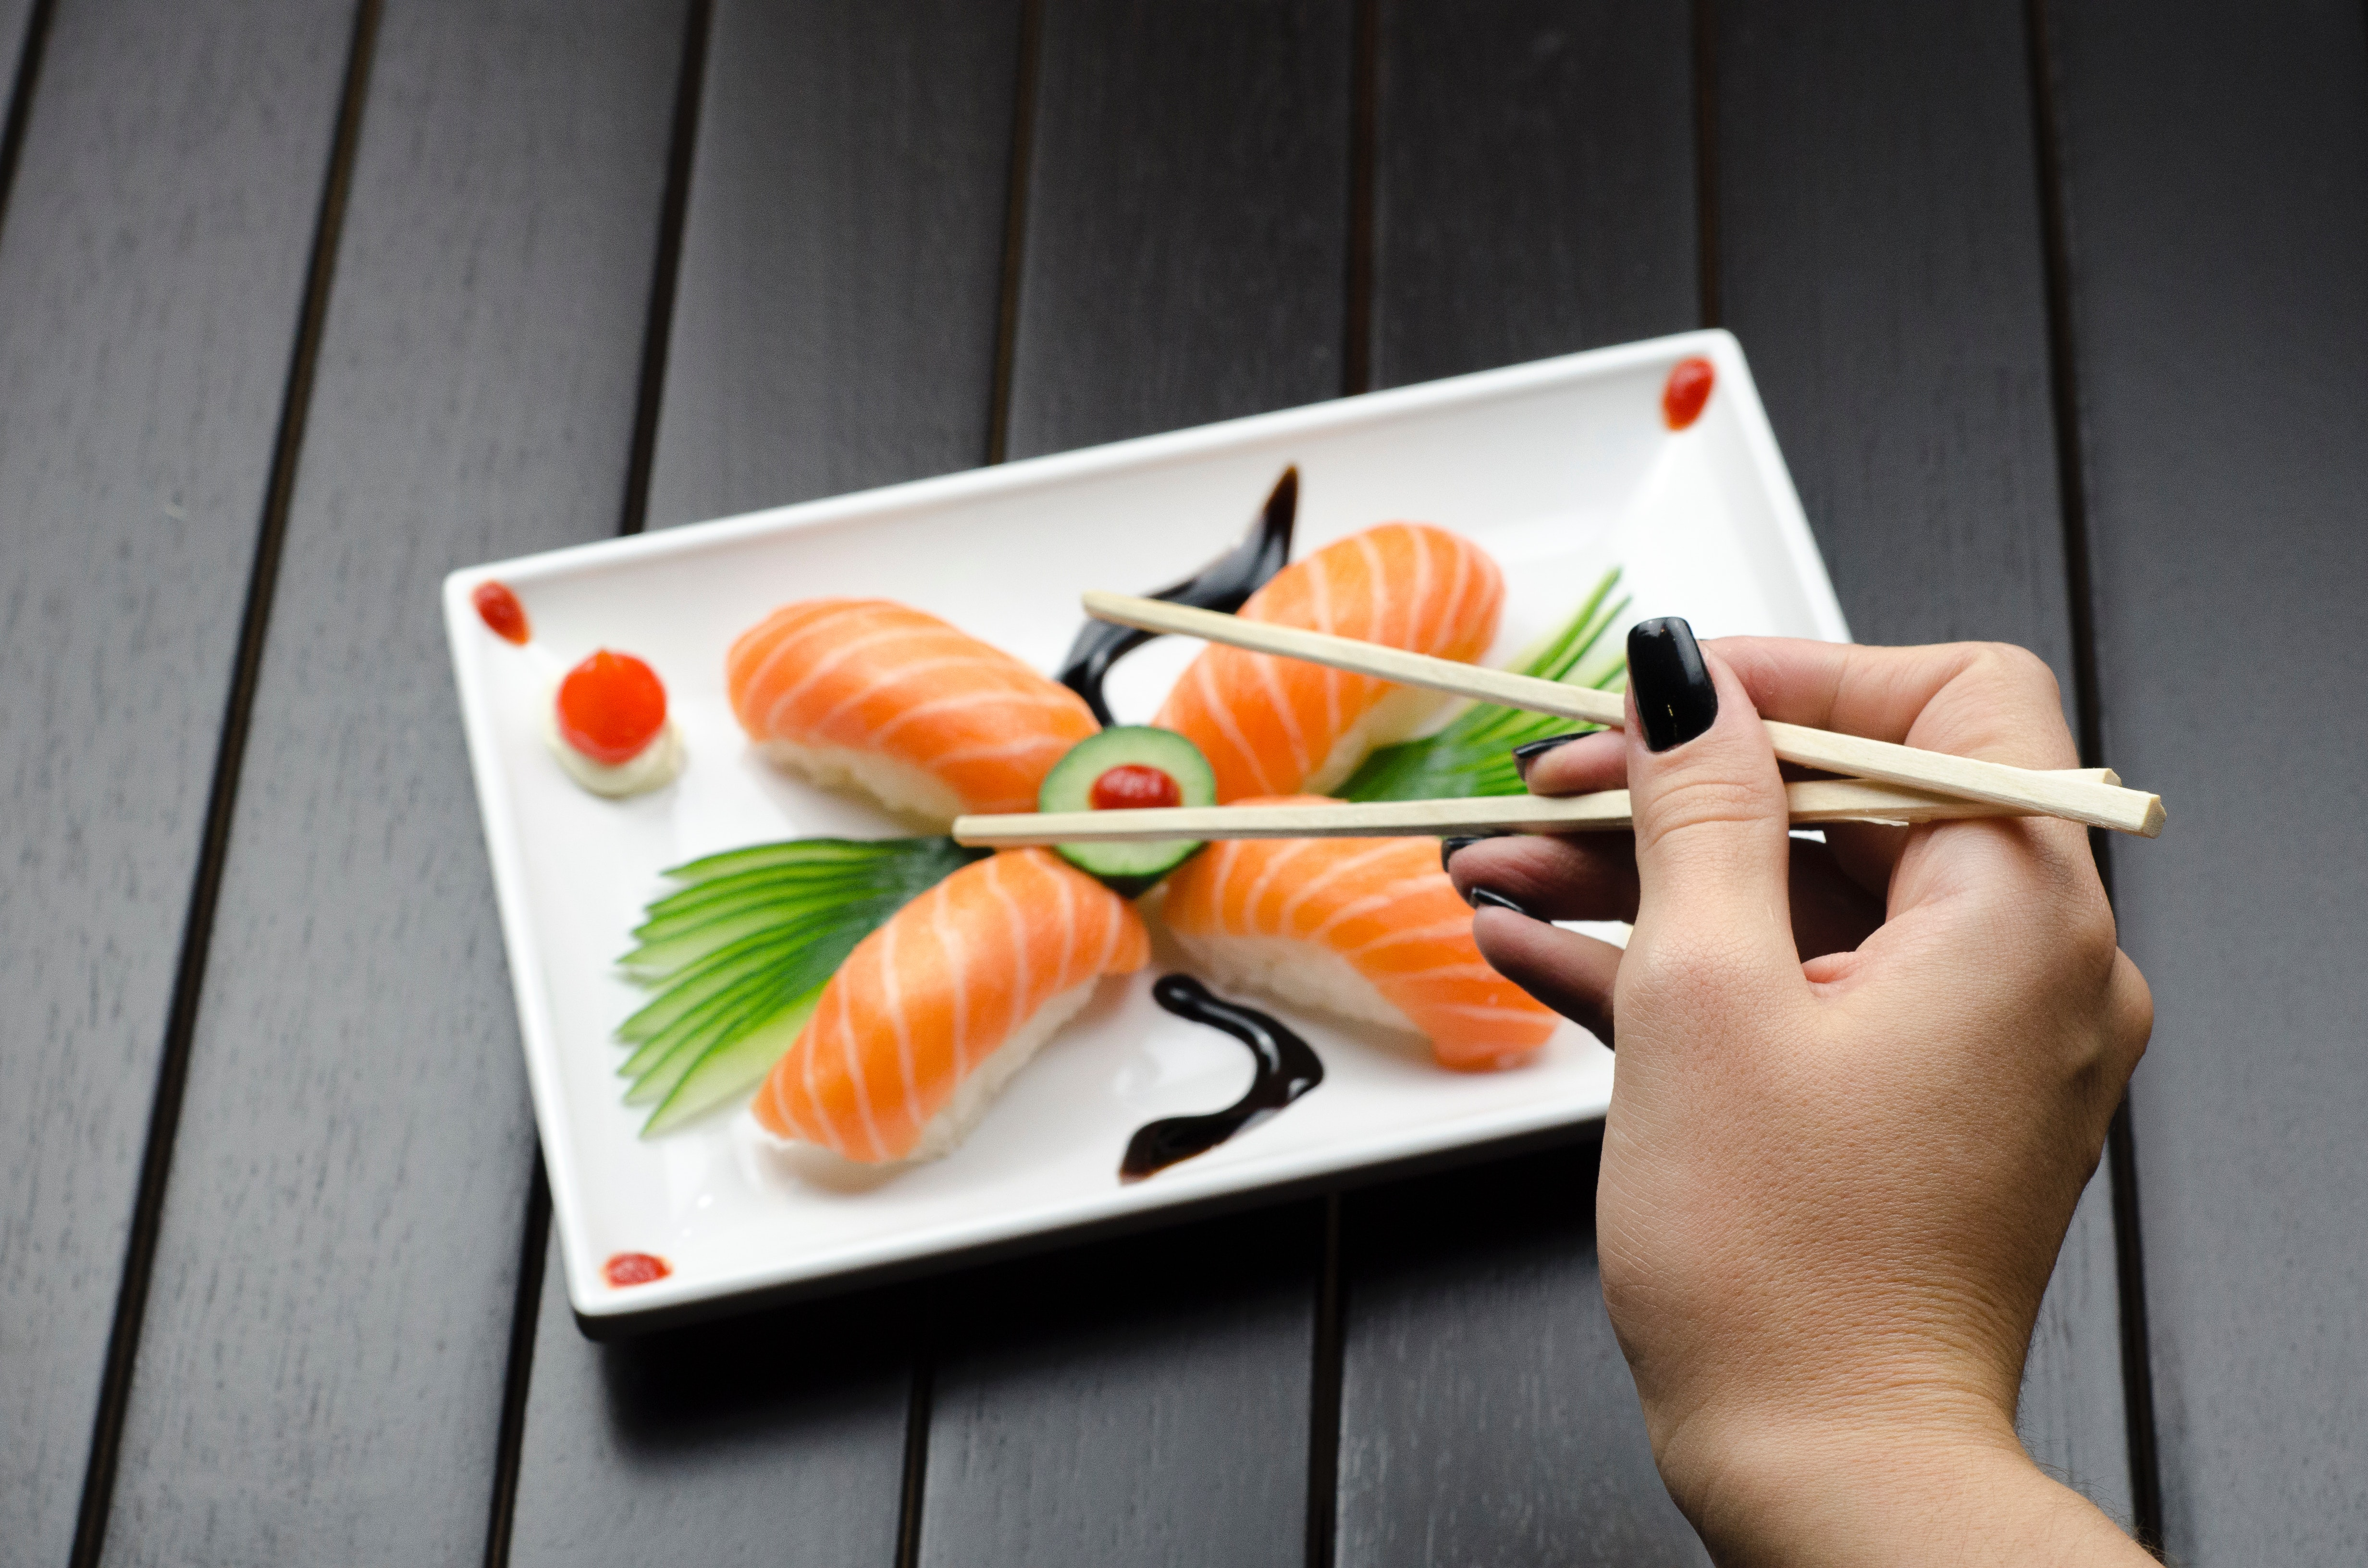 Person eating sushi photo